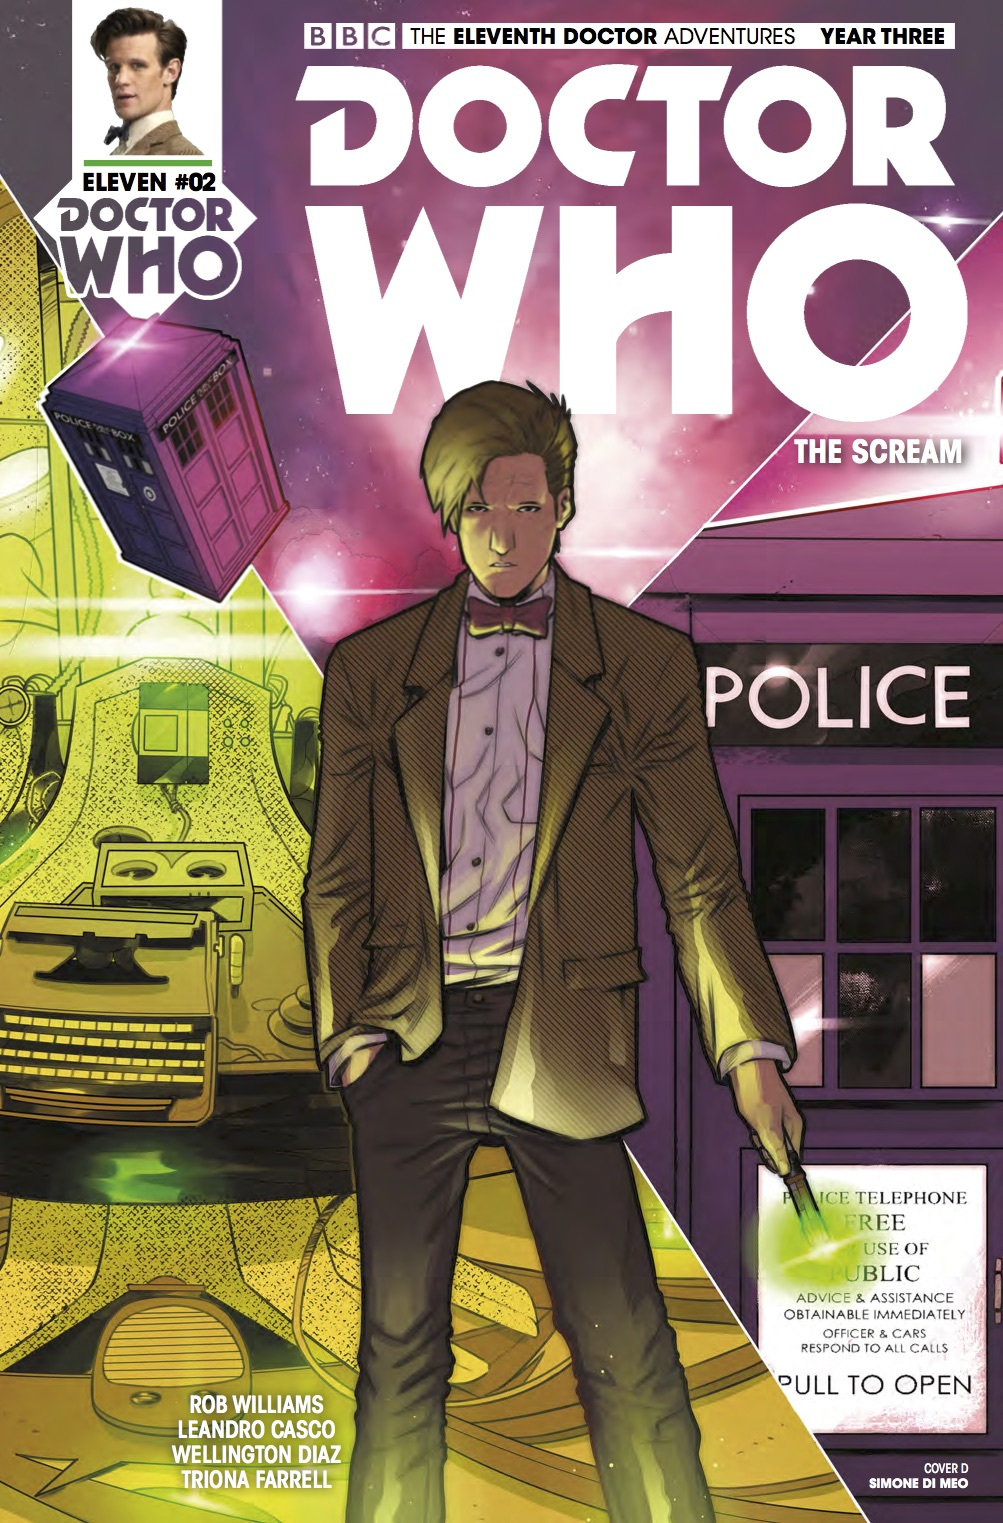 TITAN COMICS - DOCTOR WHO: ELEVENTH DOCTOR #3.2 - COVER D: Simone di Meo